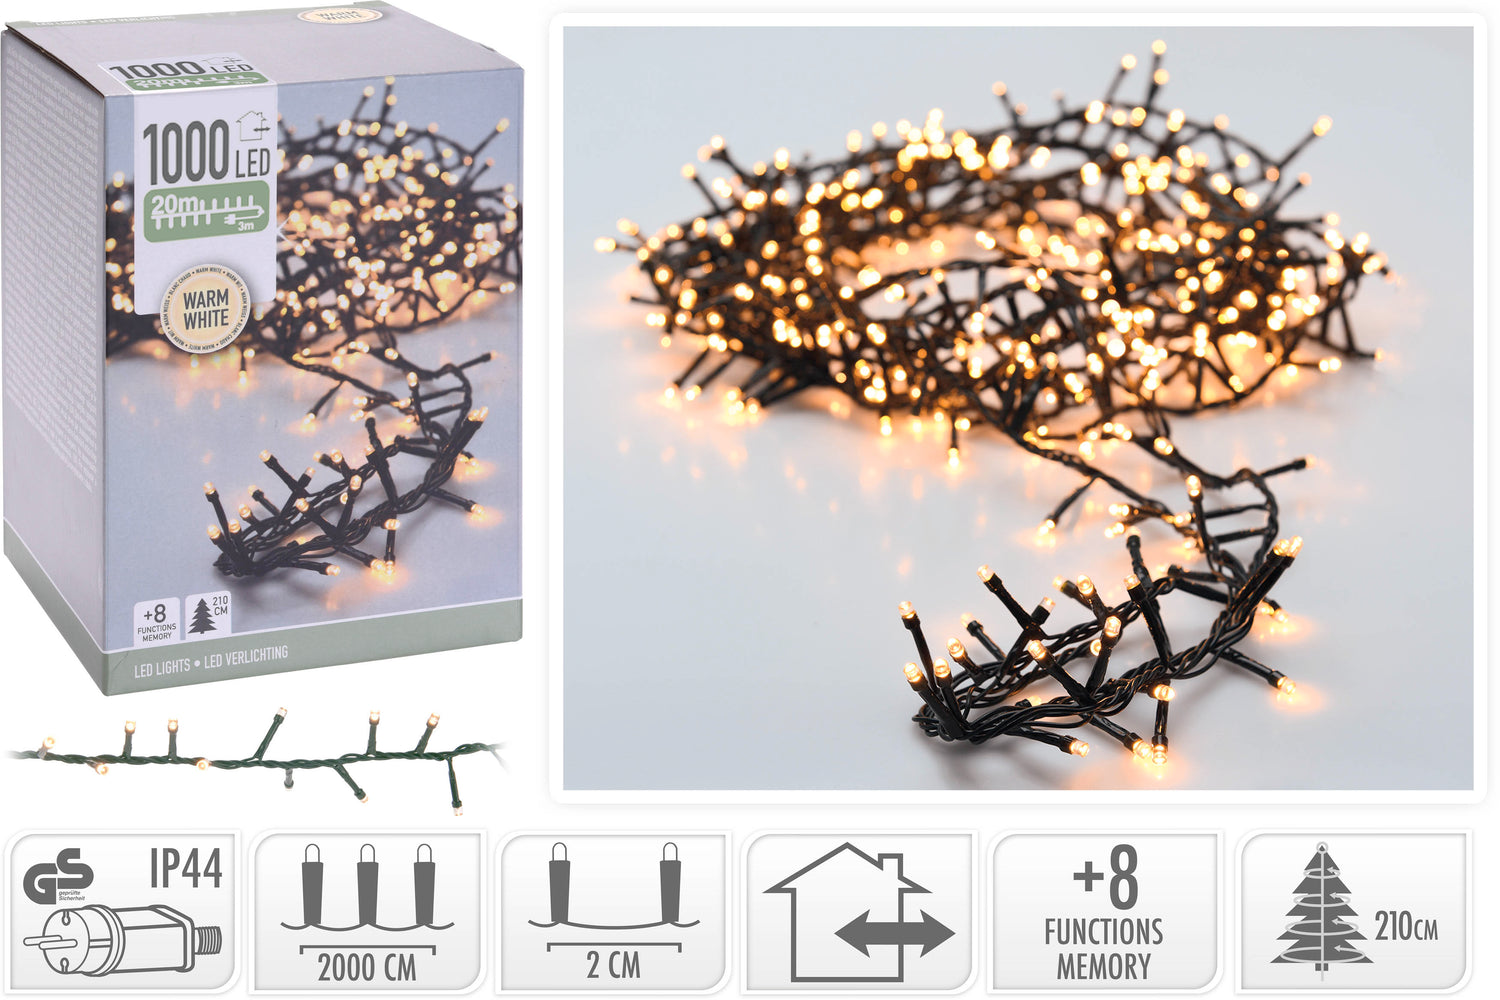 MICROCLUSTER 1000LED WW 20MTR